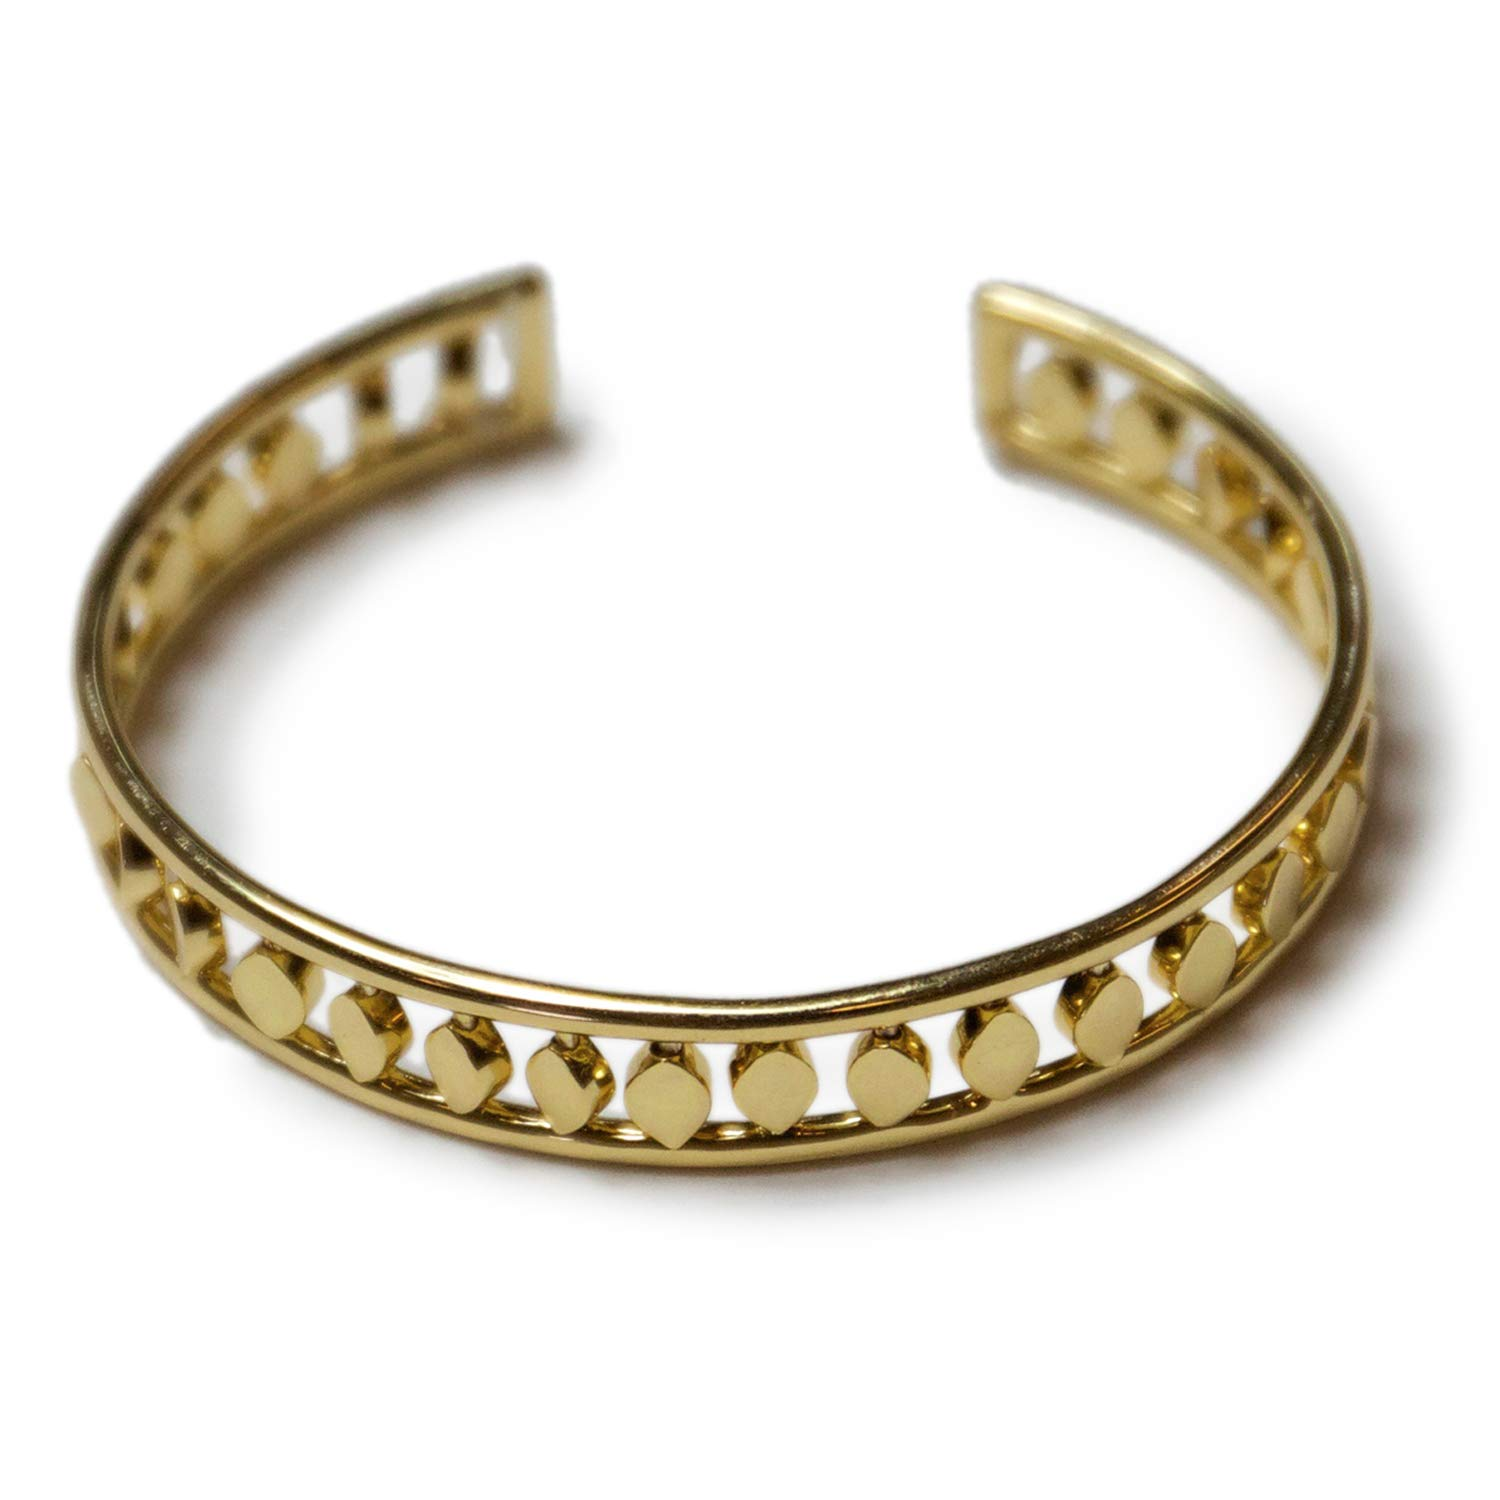 Jules Smith Aida Gold Cuff for Women or Girls: 14K Gold Plated Stylish Cuff Bracelet Features Diamond Shaped Etchings That Shimmer and Shine.